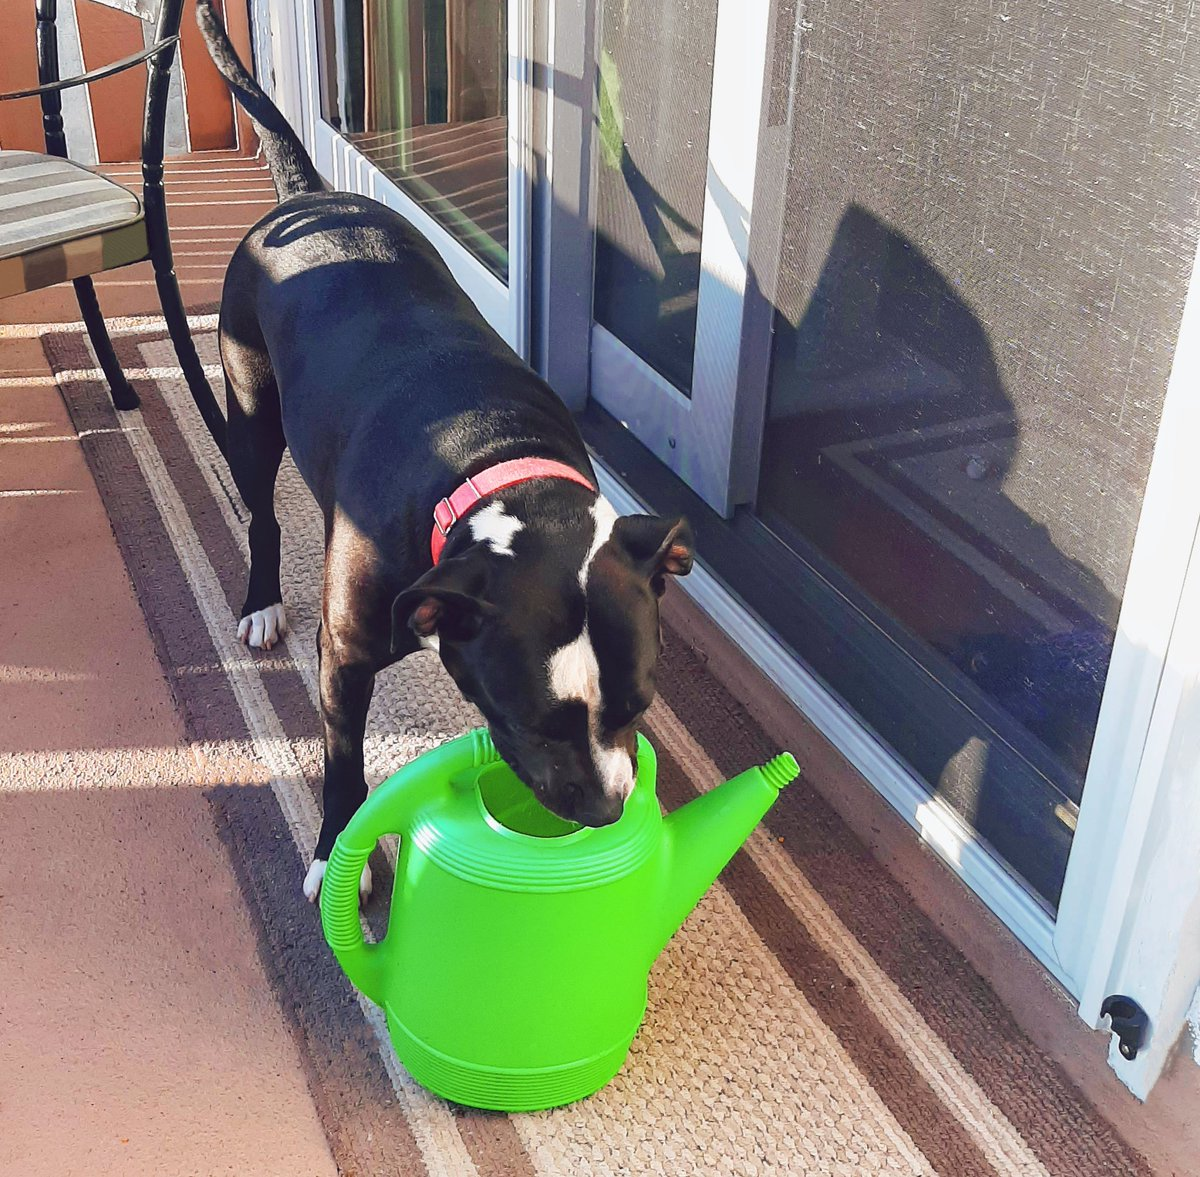 My doggie tried to help water the plants on the deck today #Pitbulls #RescueDogs pic.twitter.com/lMgqFfYK95